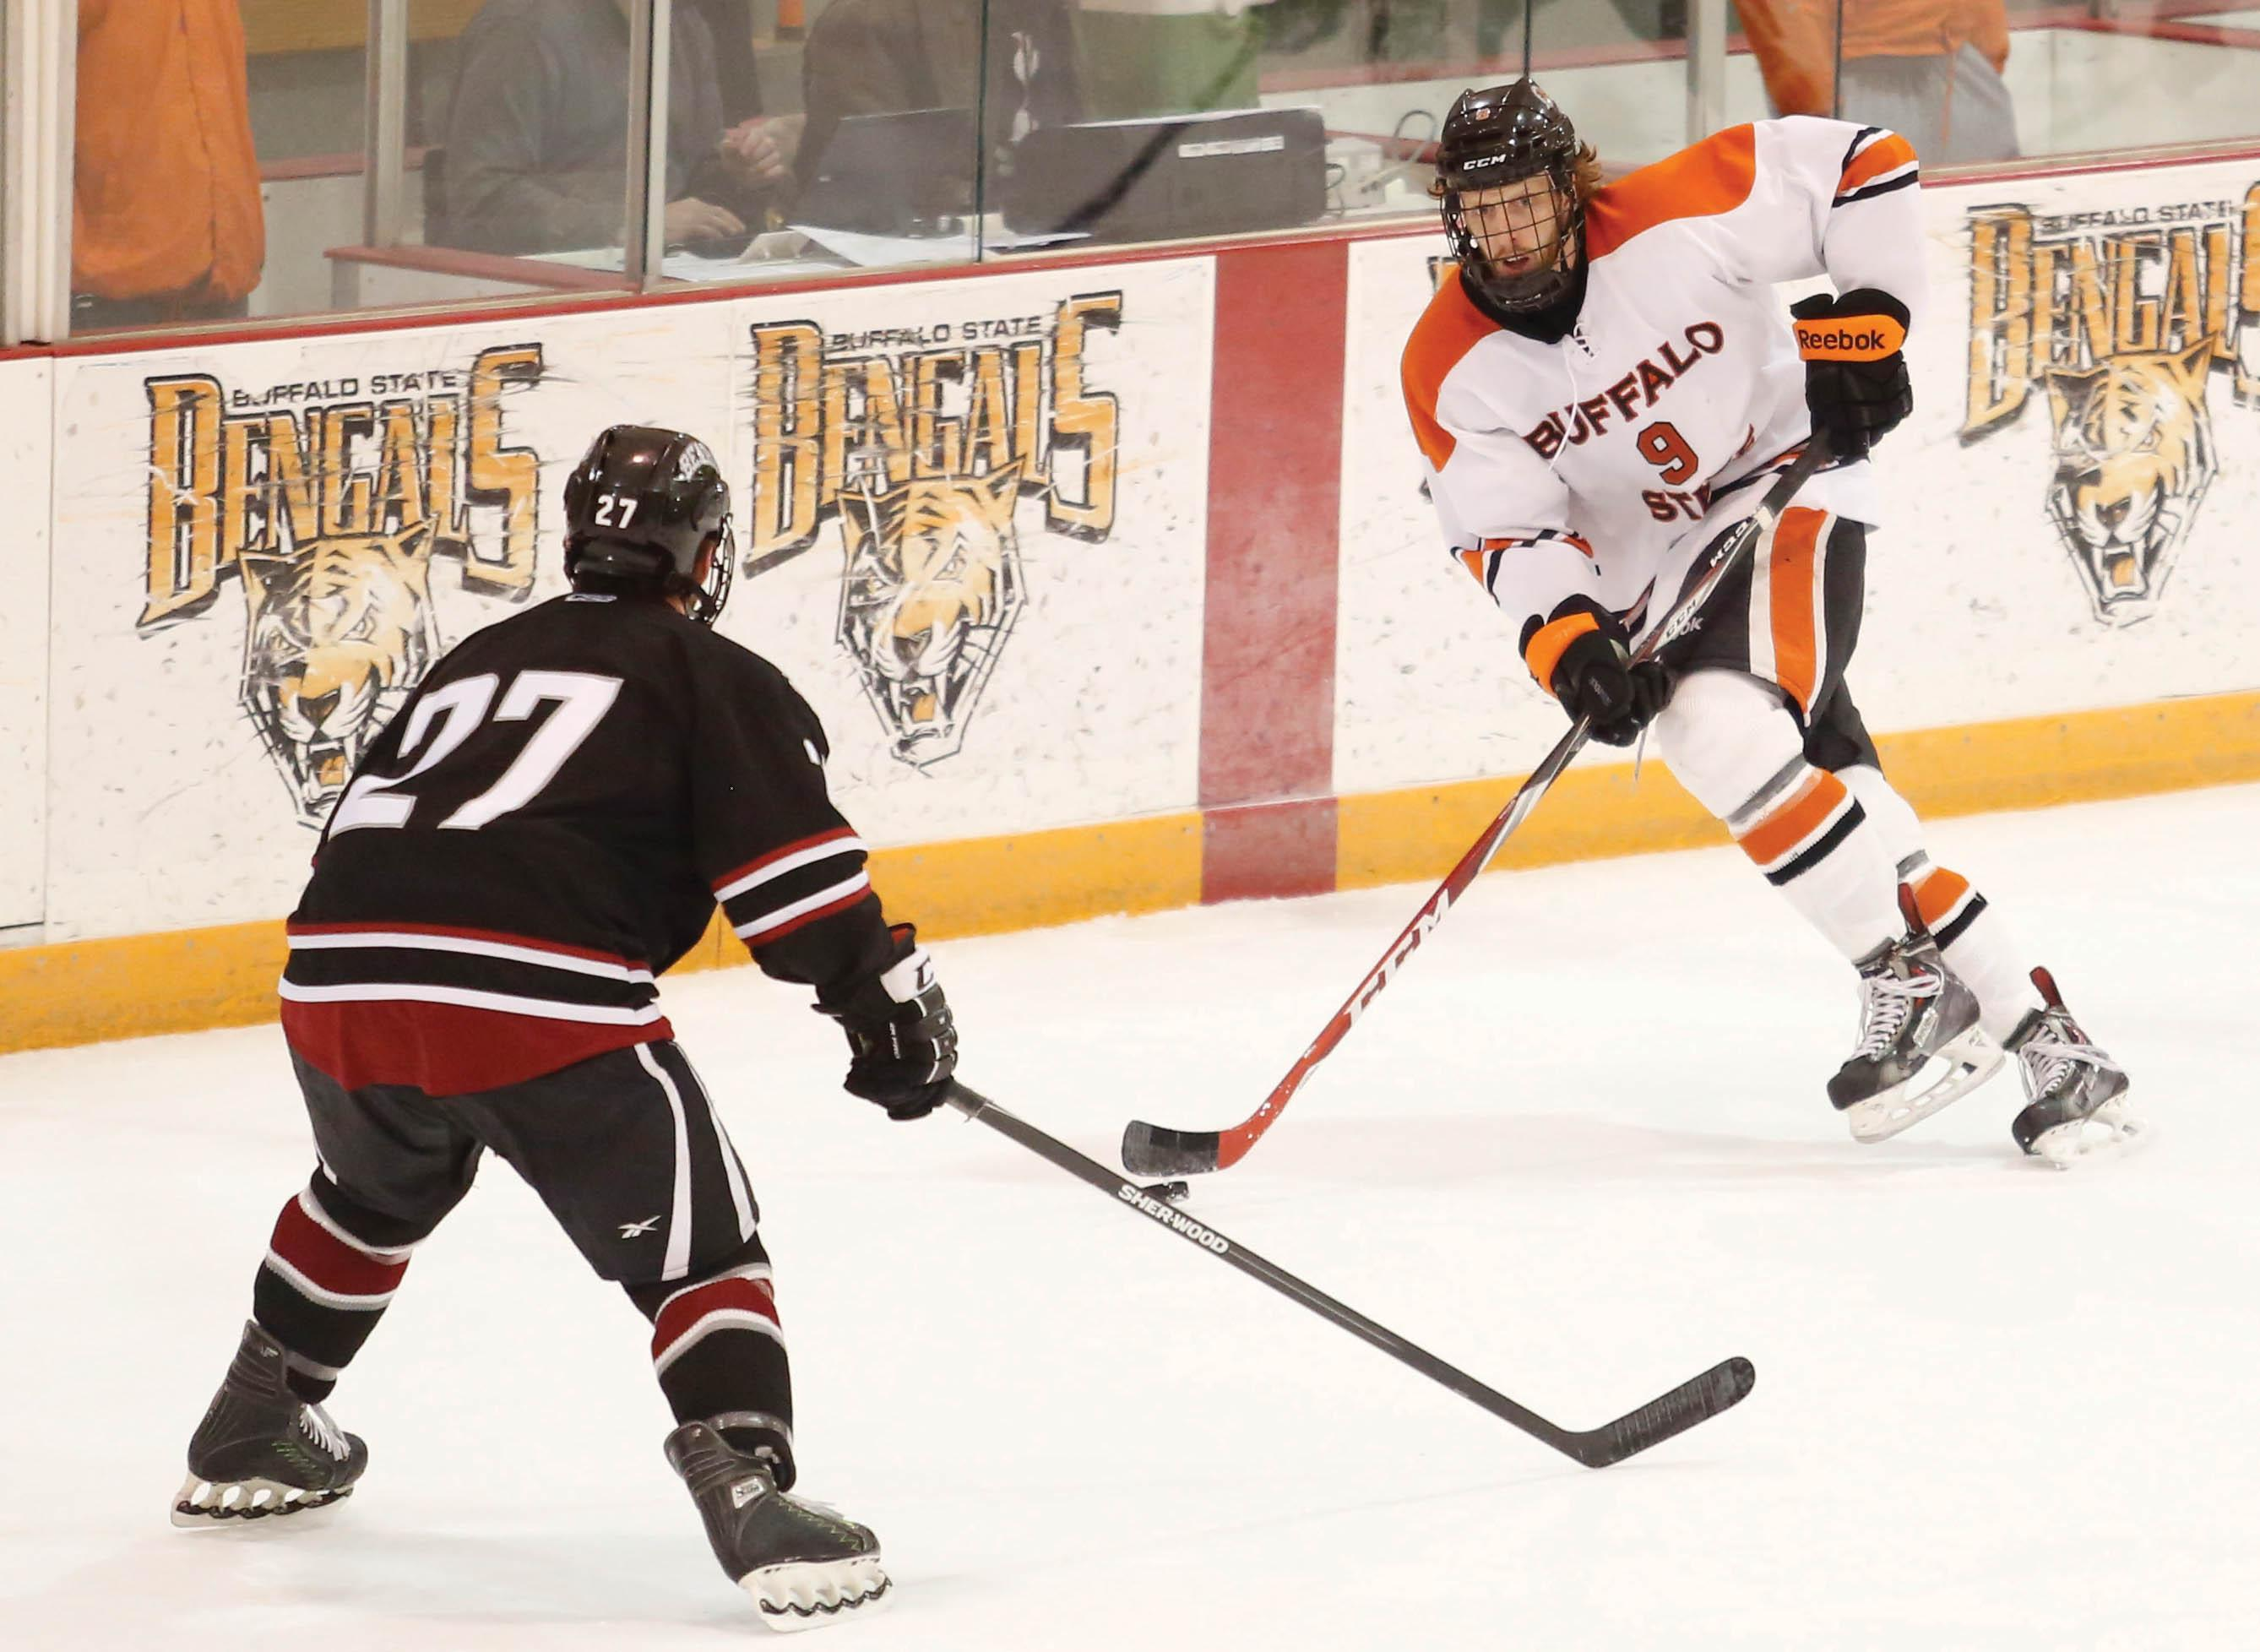 Senior forward Ryan Salkeld finished his four-year Buffalo State career with 73 points, 10th all-time in program history